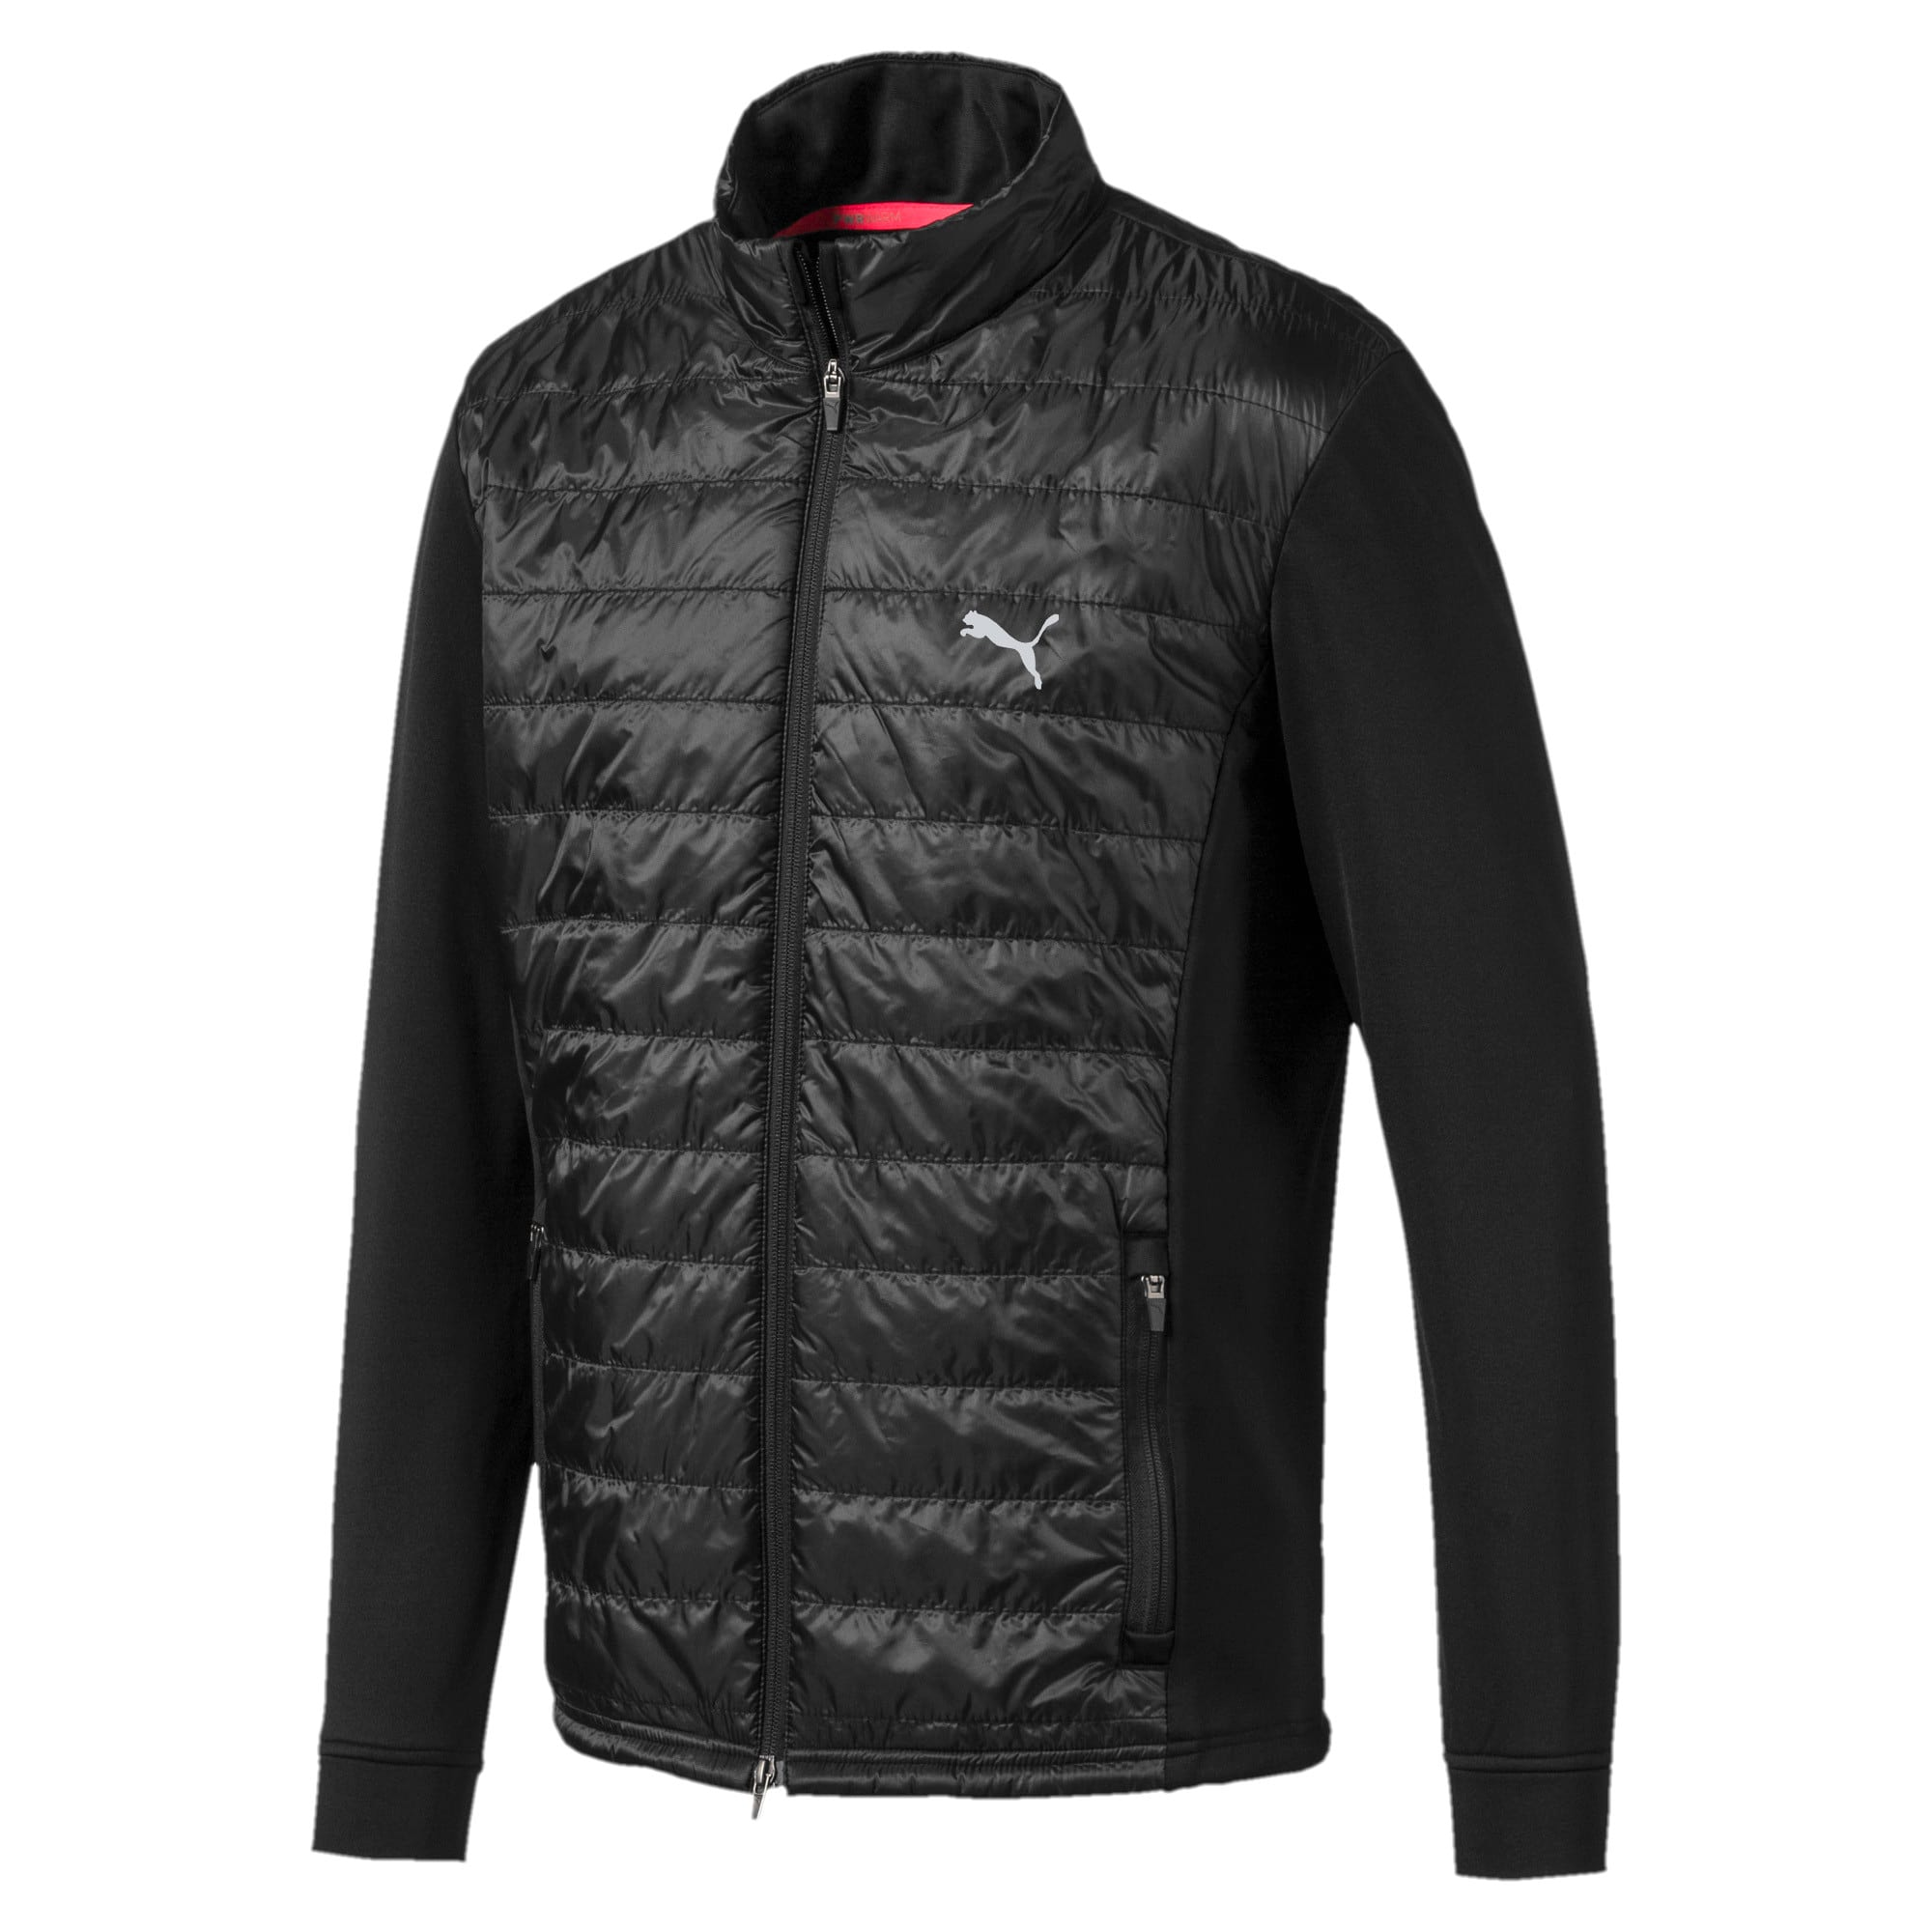 Thumbnail 5 of Gesteppte Primaloft® Herren Golf Jacke, Puma Black, medium